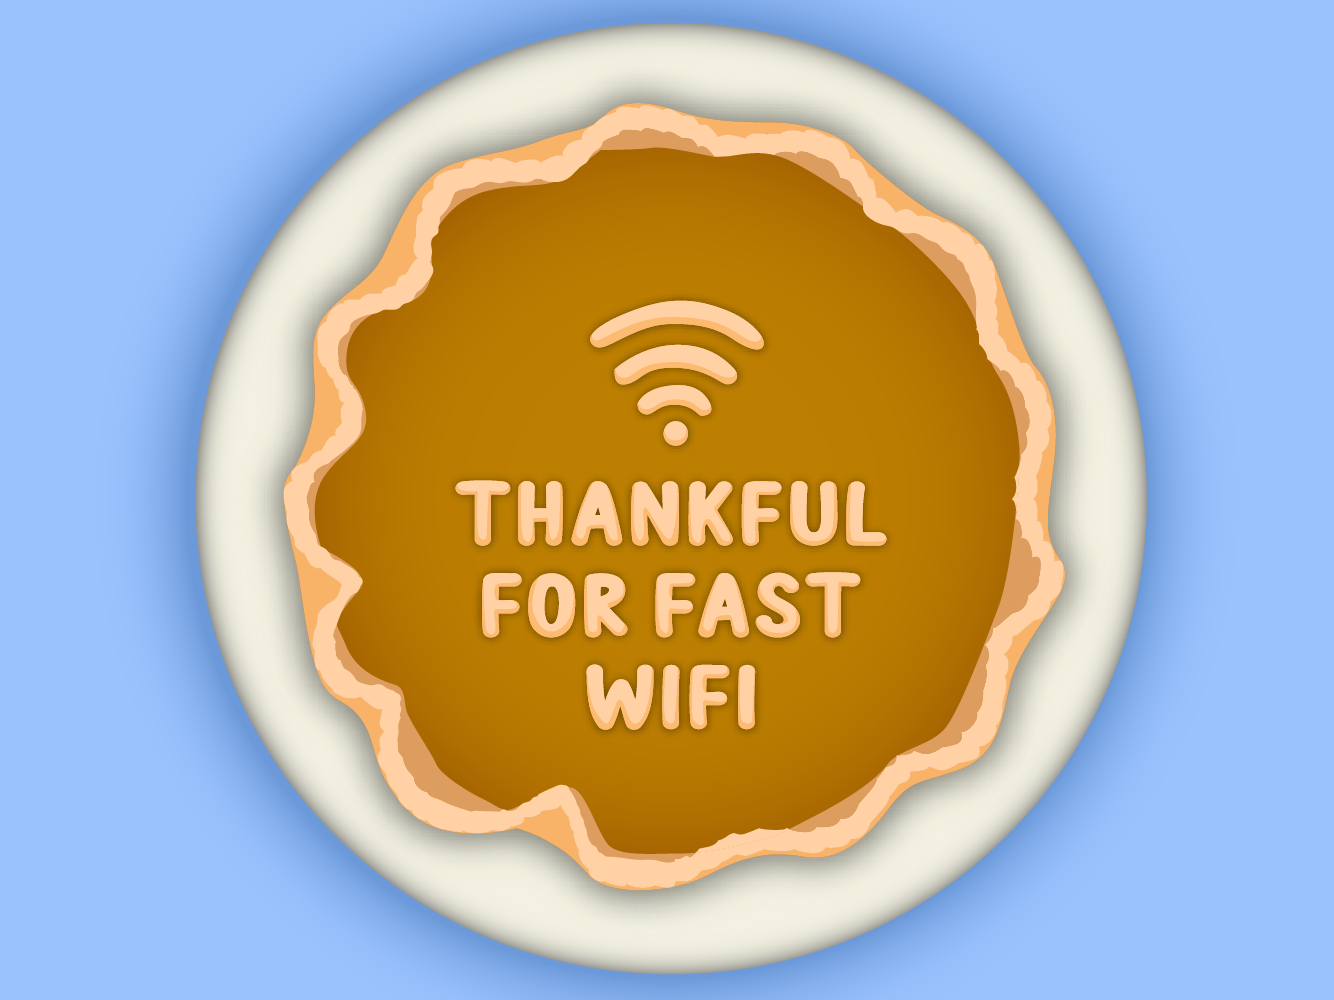 869898 _Thankful forfastWiFipie_102820.png